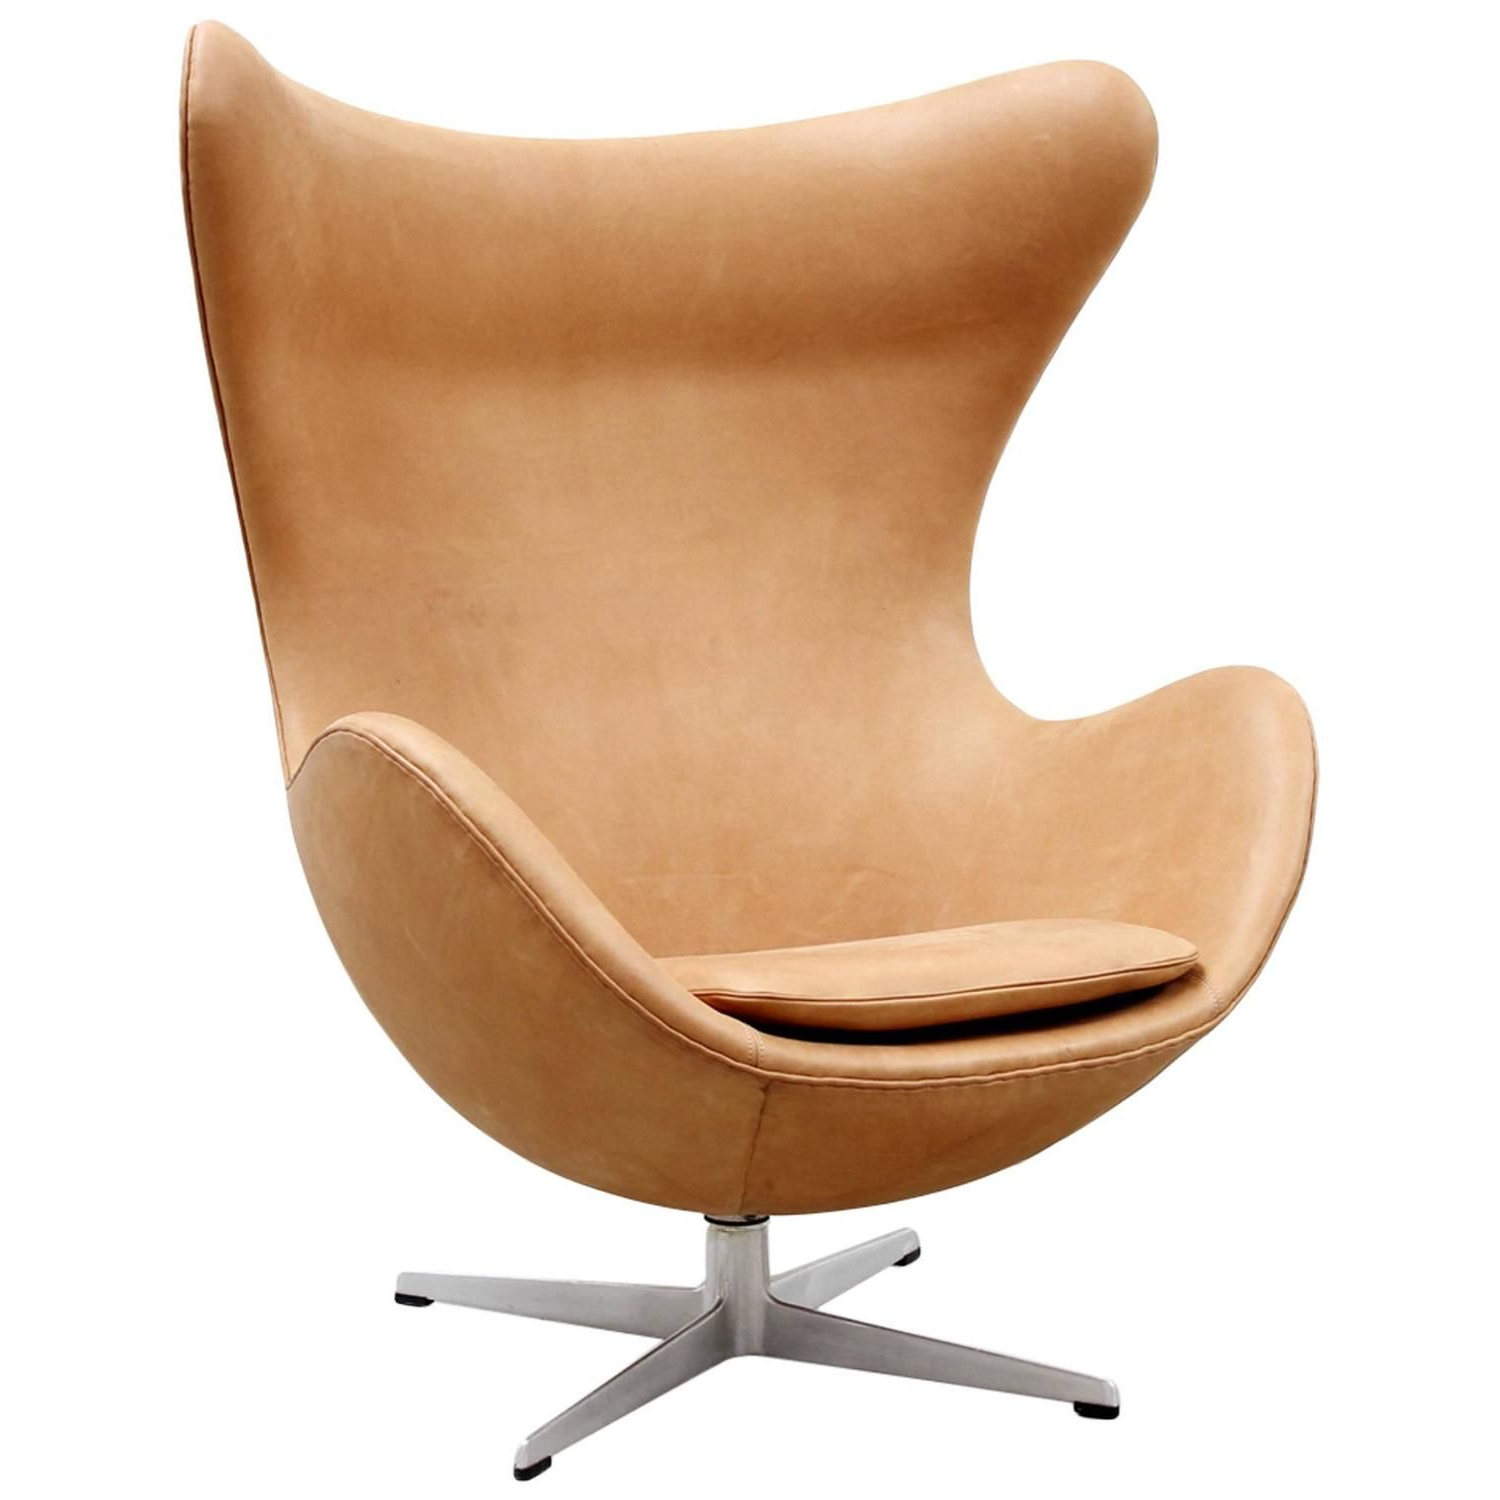 Alder Grande Ii Swivel Chairs With Fashionable Cognac Leather Egg Chairarne Jacobsen For Fritz Hansen,  (View 1 of 20)